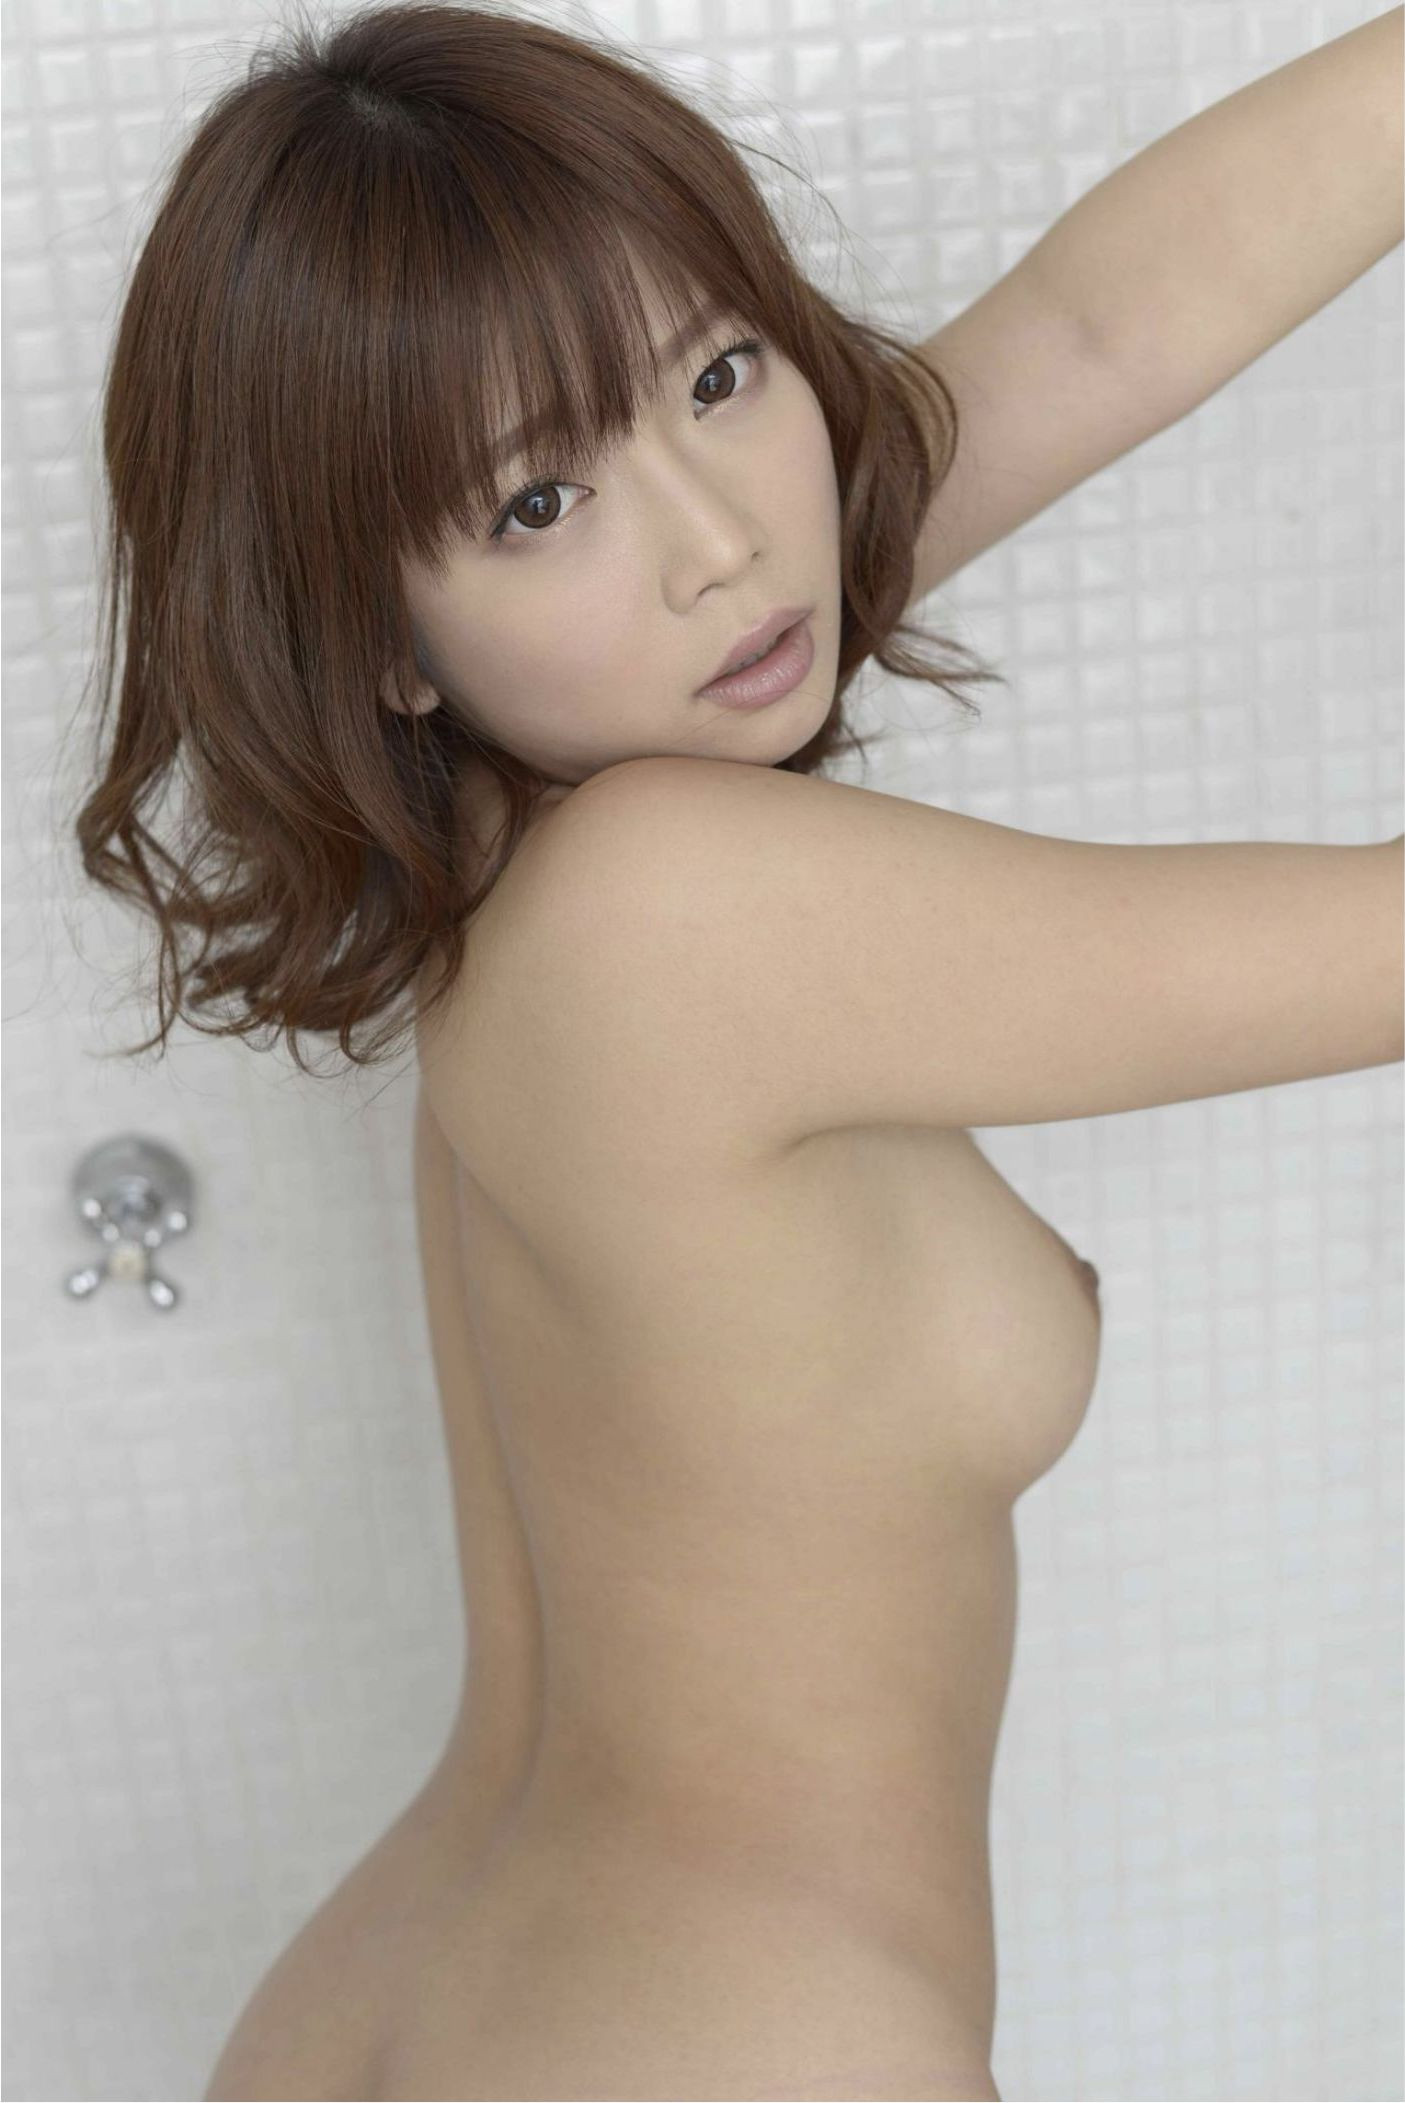 SOFT ON DEMAND GRAVURE COLLECTION 紗倉まな02 photo 062